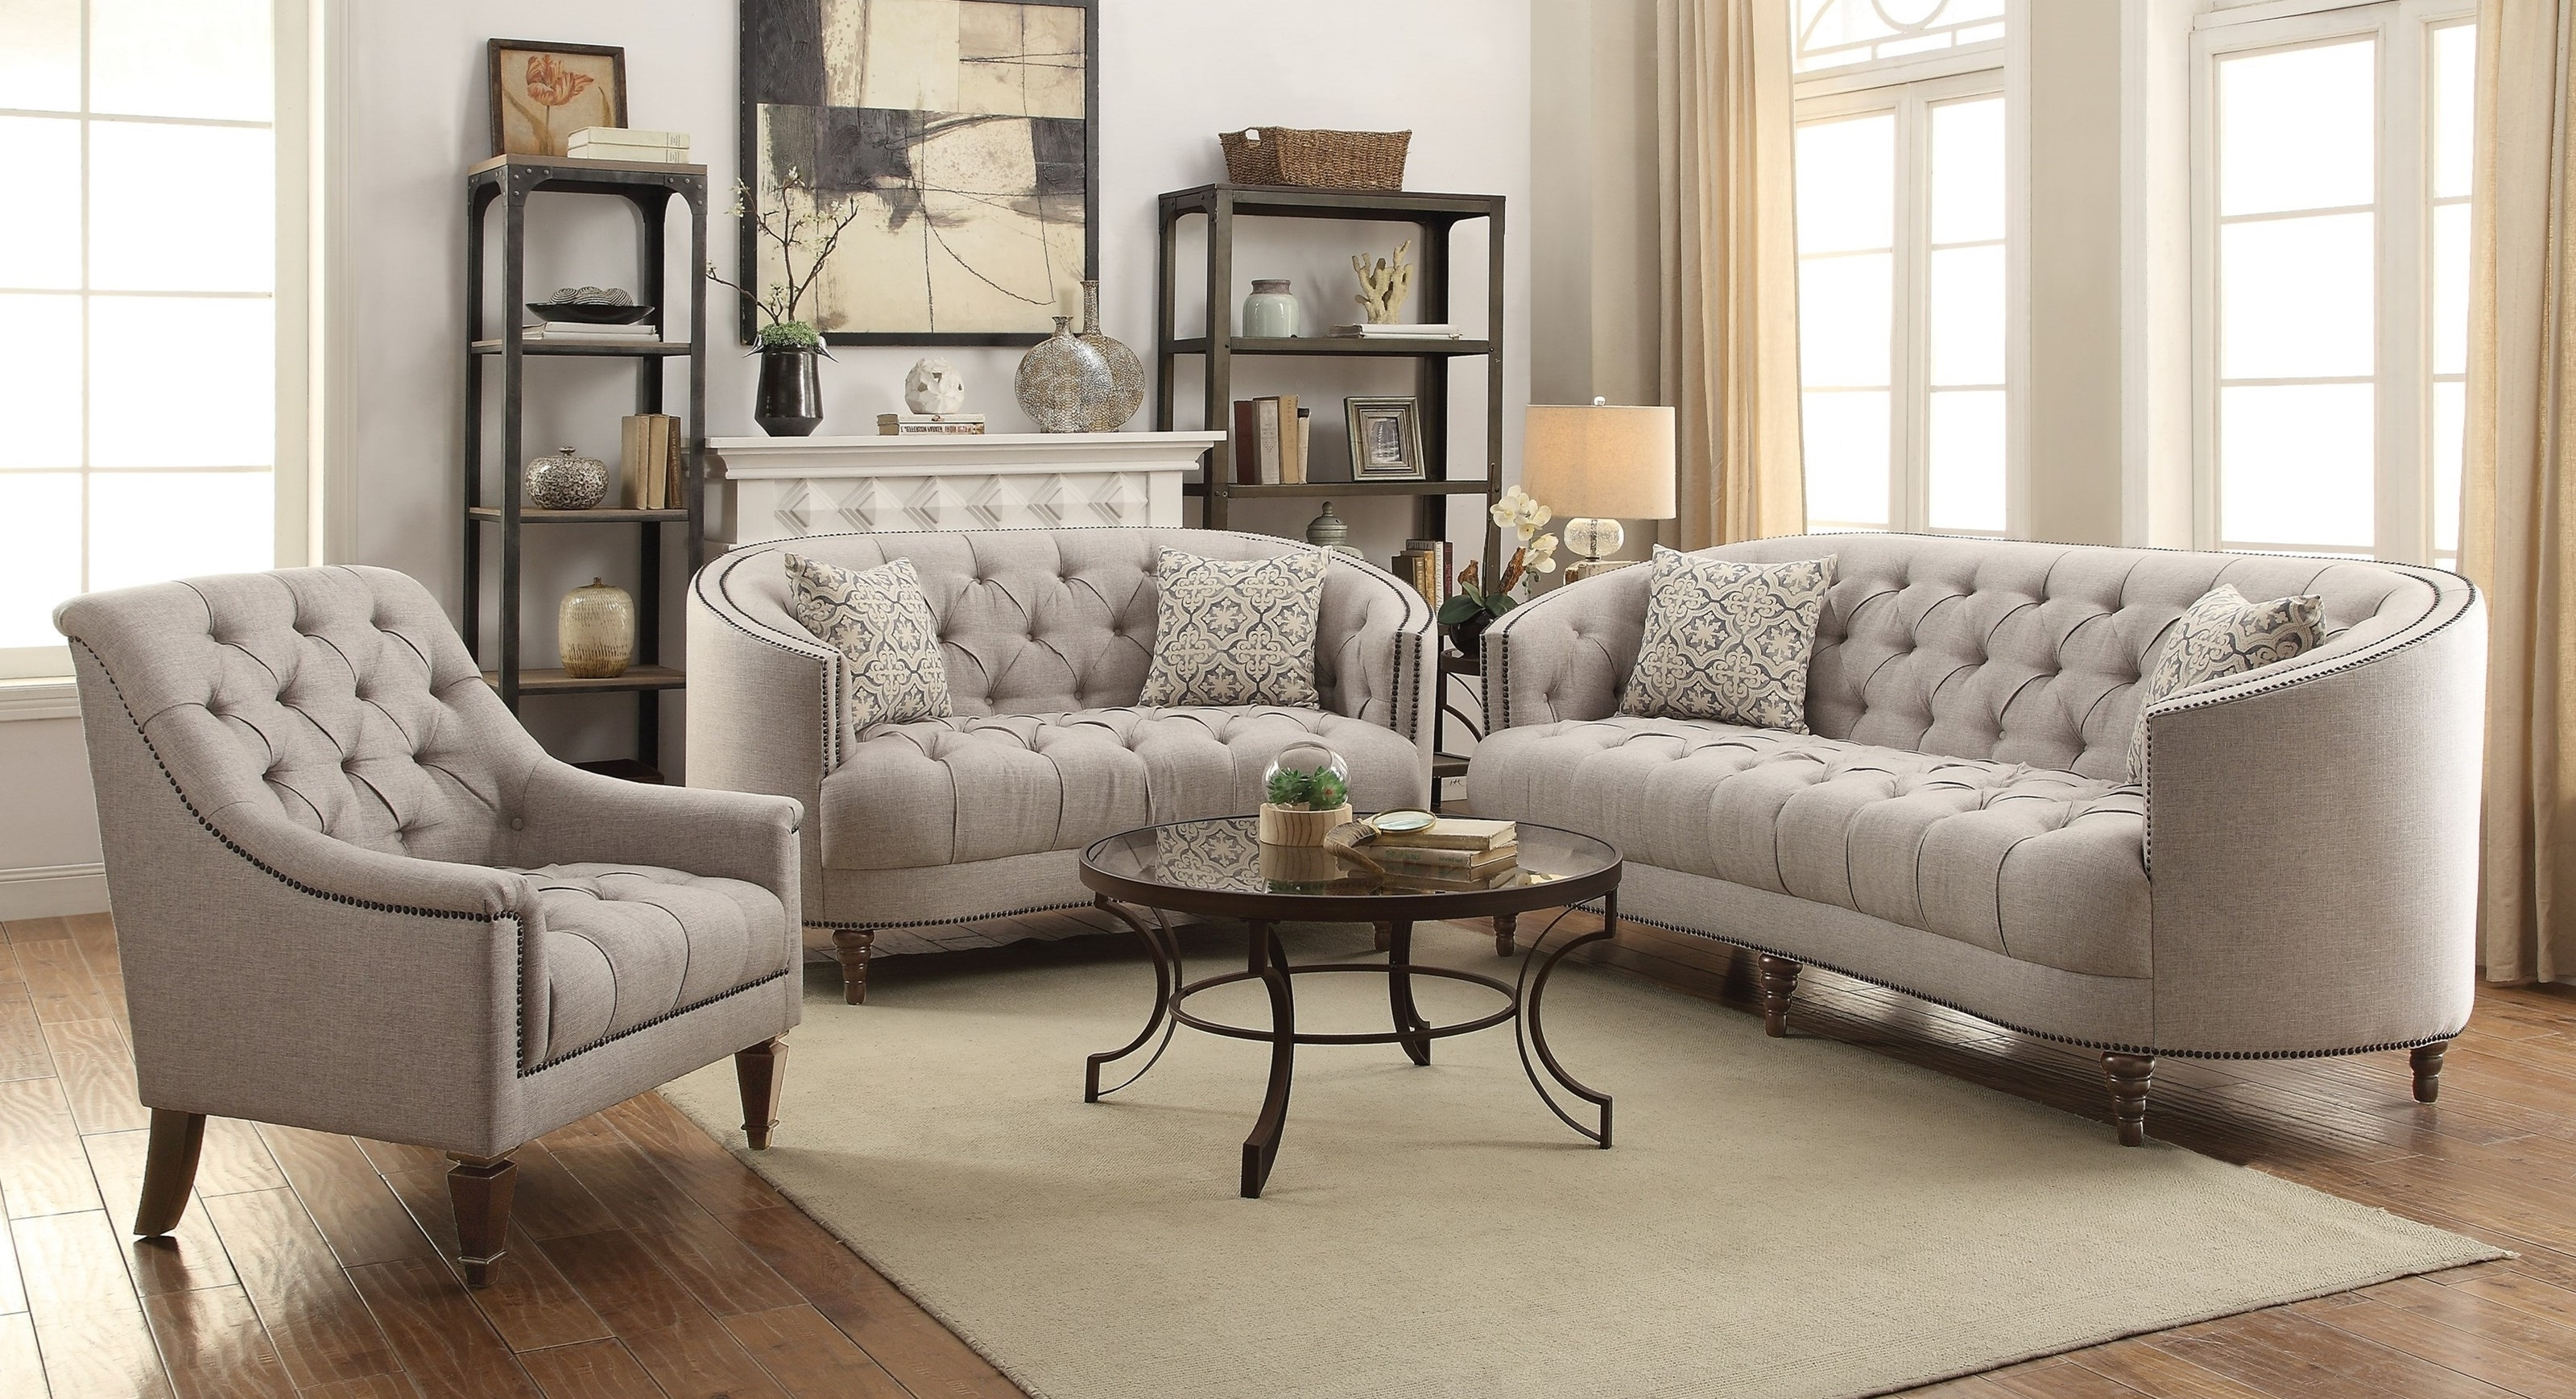 Well Liked Avonlea Sofa And Chair Set – 505641 With Regard To C Shaped Sofas (View 5 of 15)